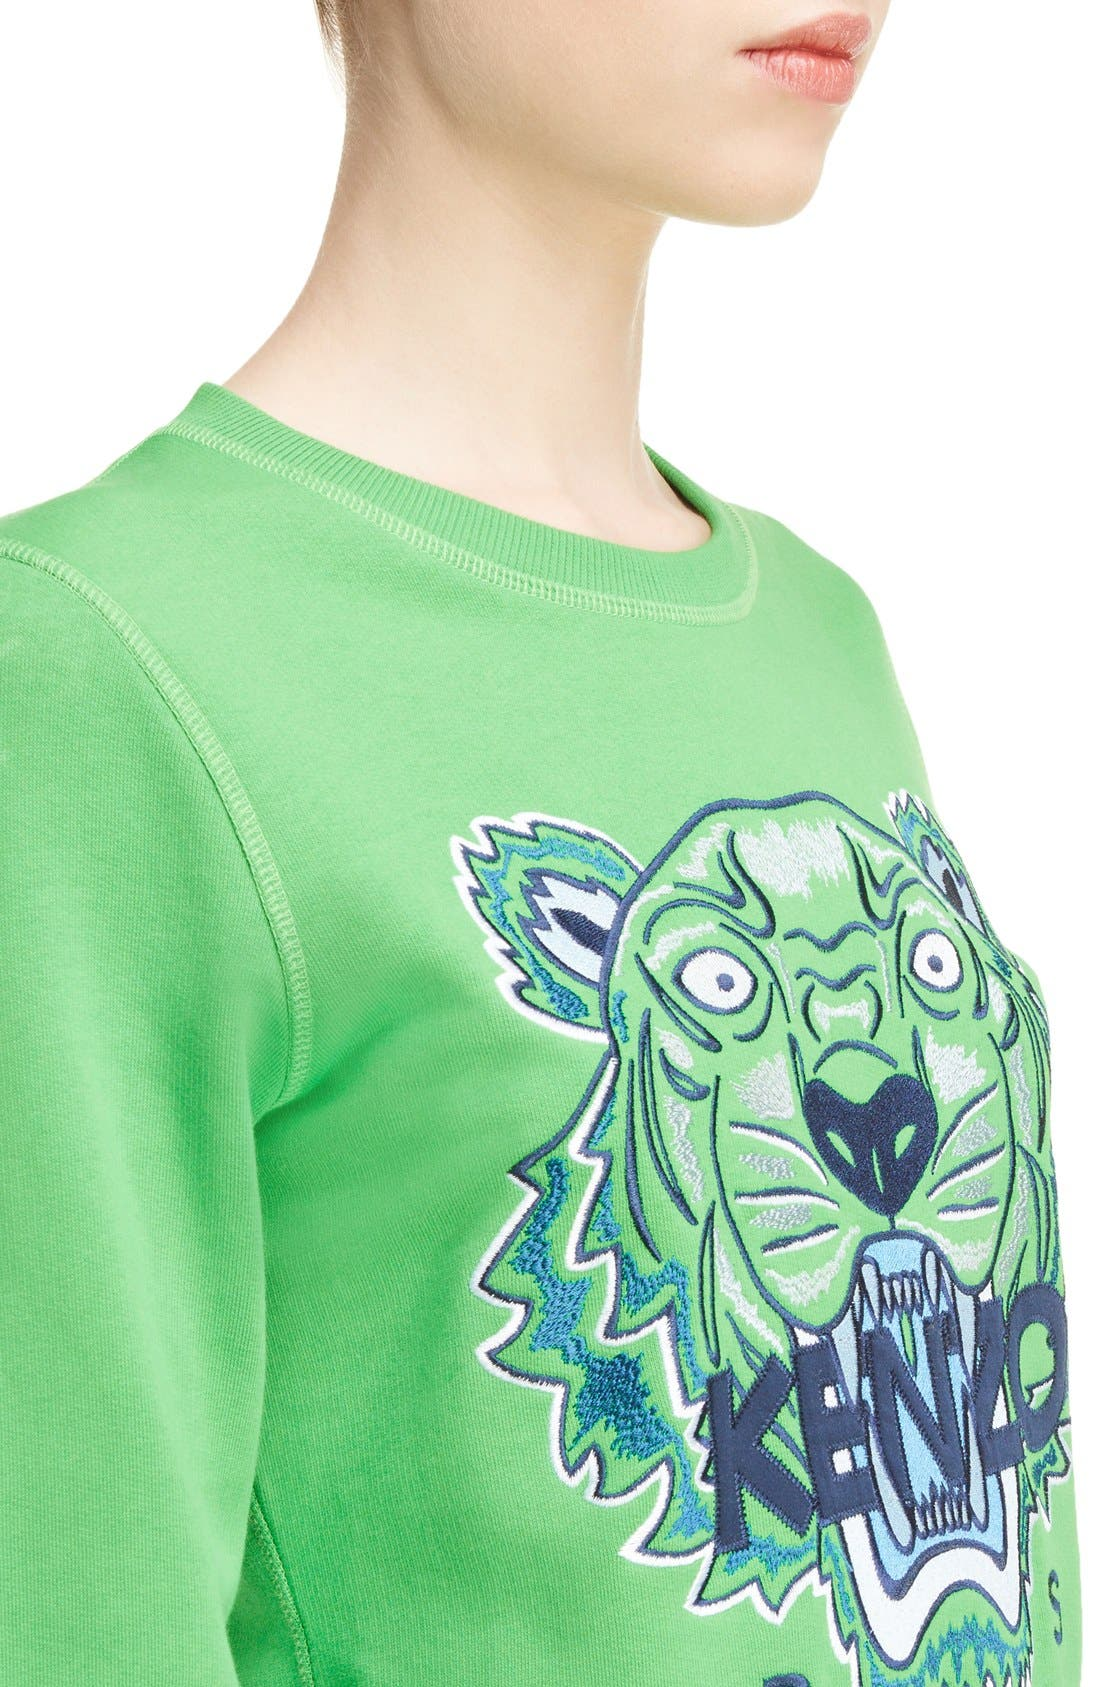 Embroidered Tiger Cotton Sweatshirt,                         Main,                         color, 311